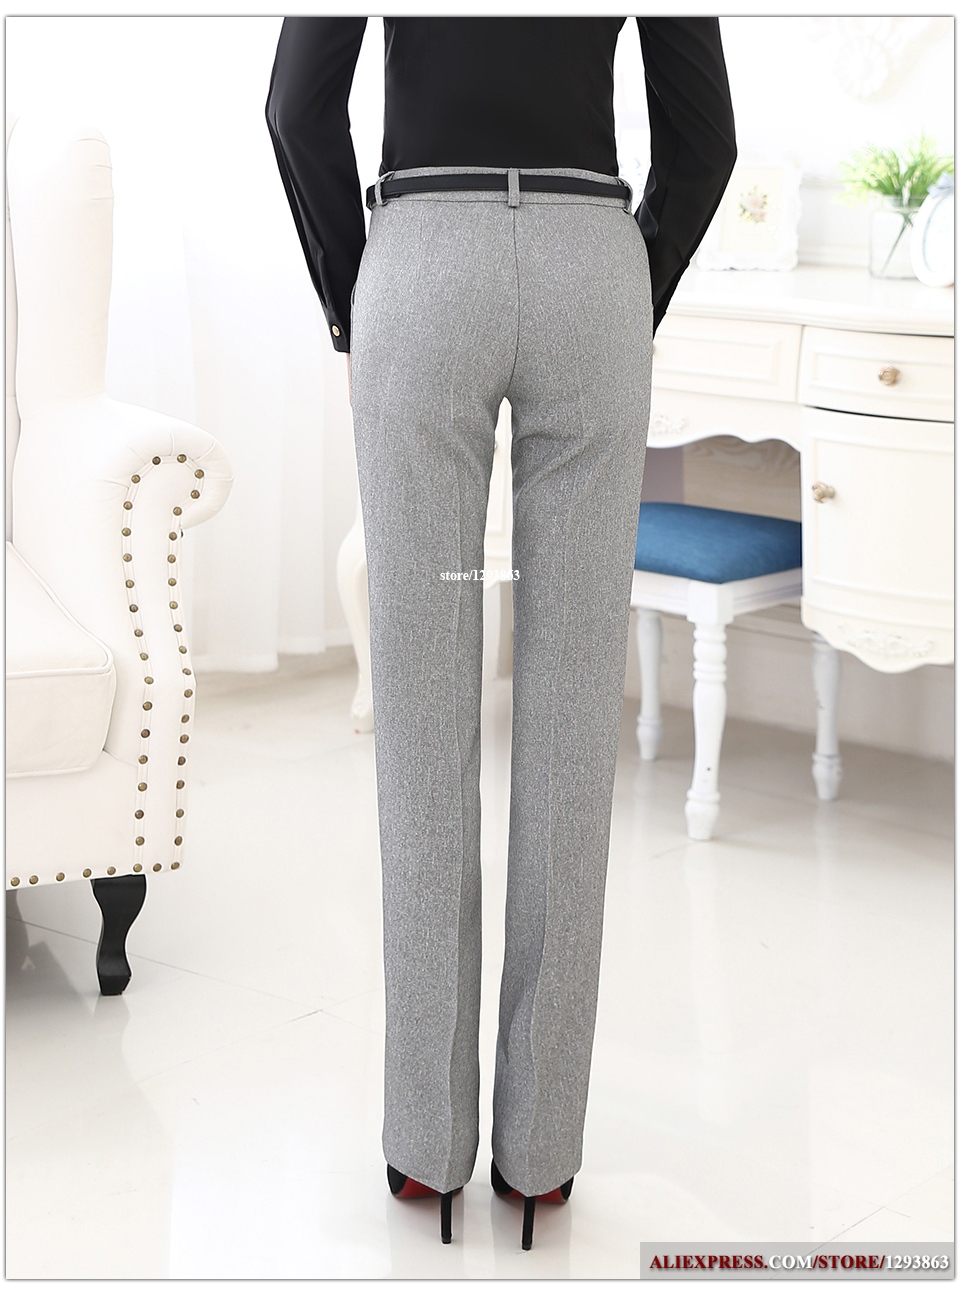 Lenshin Plus Size Formal Adjustable Pants for Women Office Lady Style Work Wear Straight Belt Loop Trousers Business Design